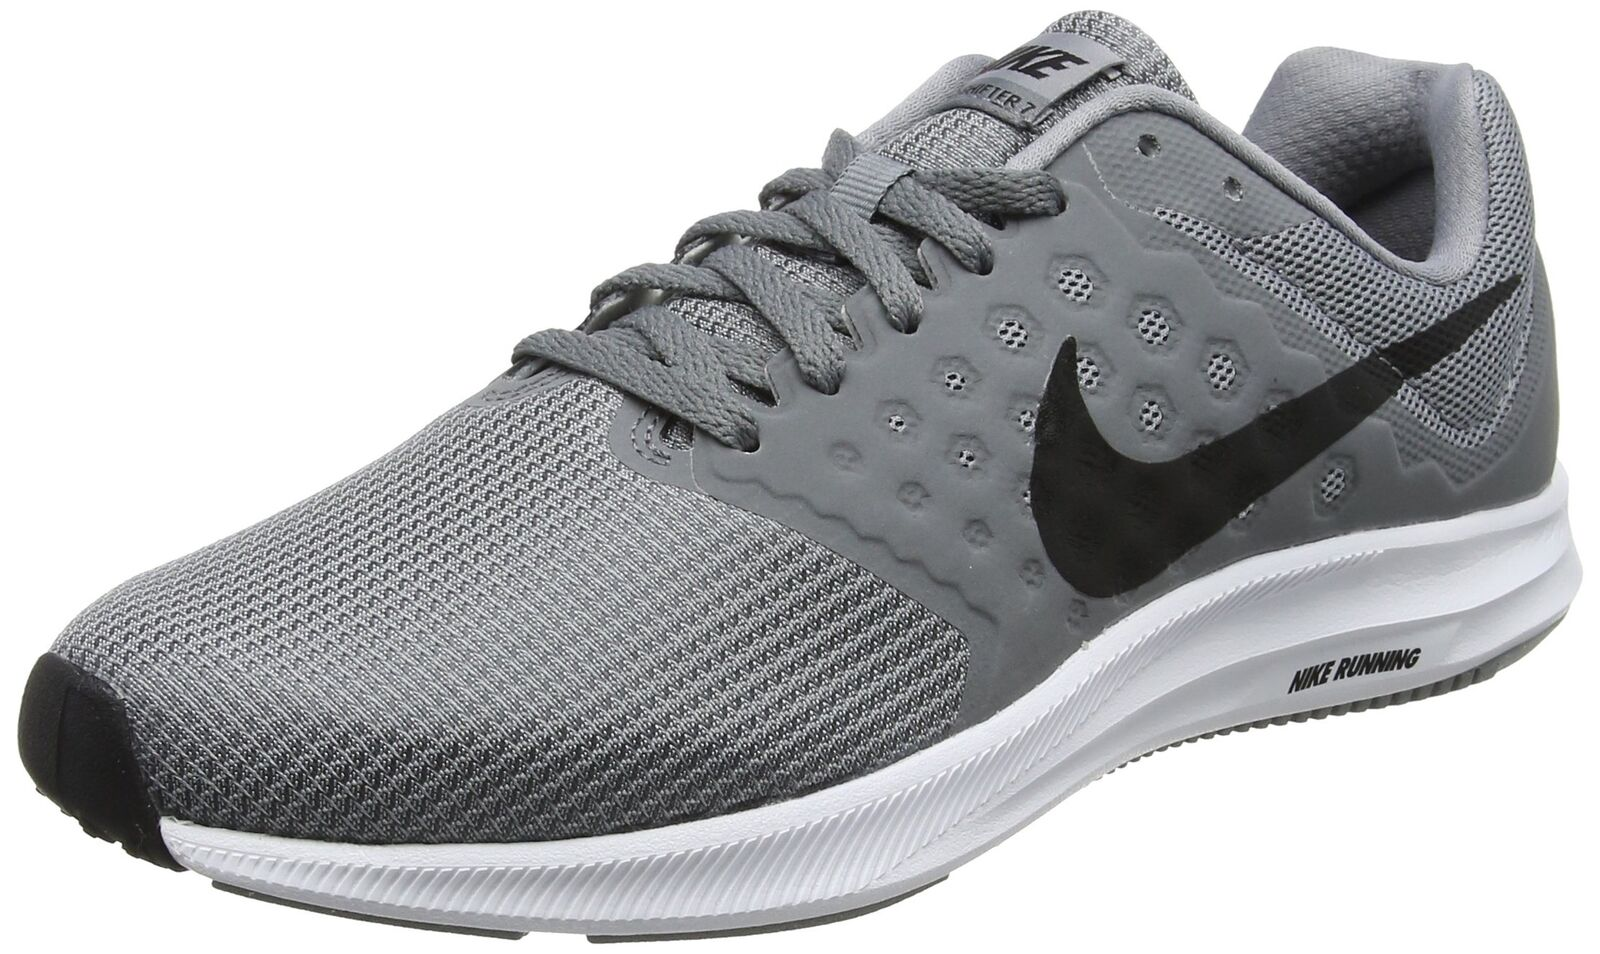 NIKE Men's Downshifter 7 Running shoes Stealth Black Cool Grey White Size 9 M US